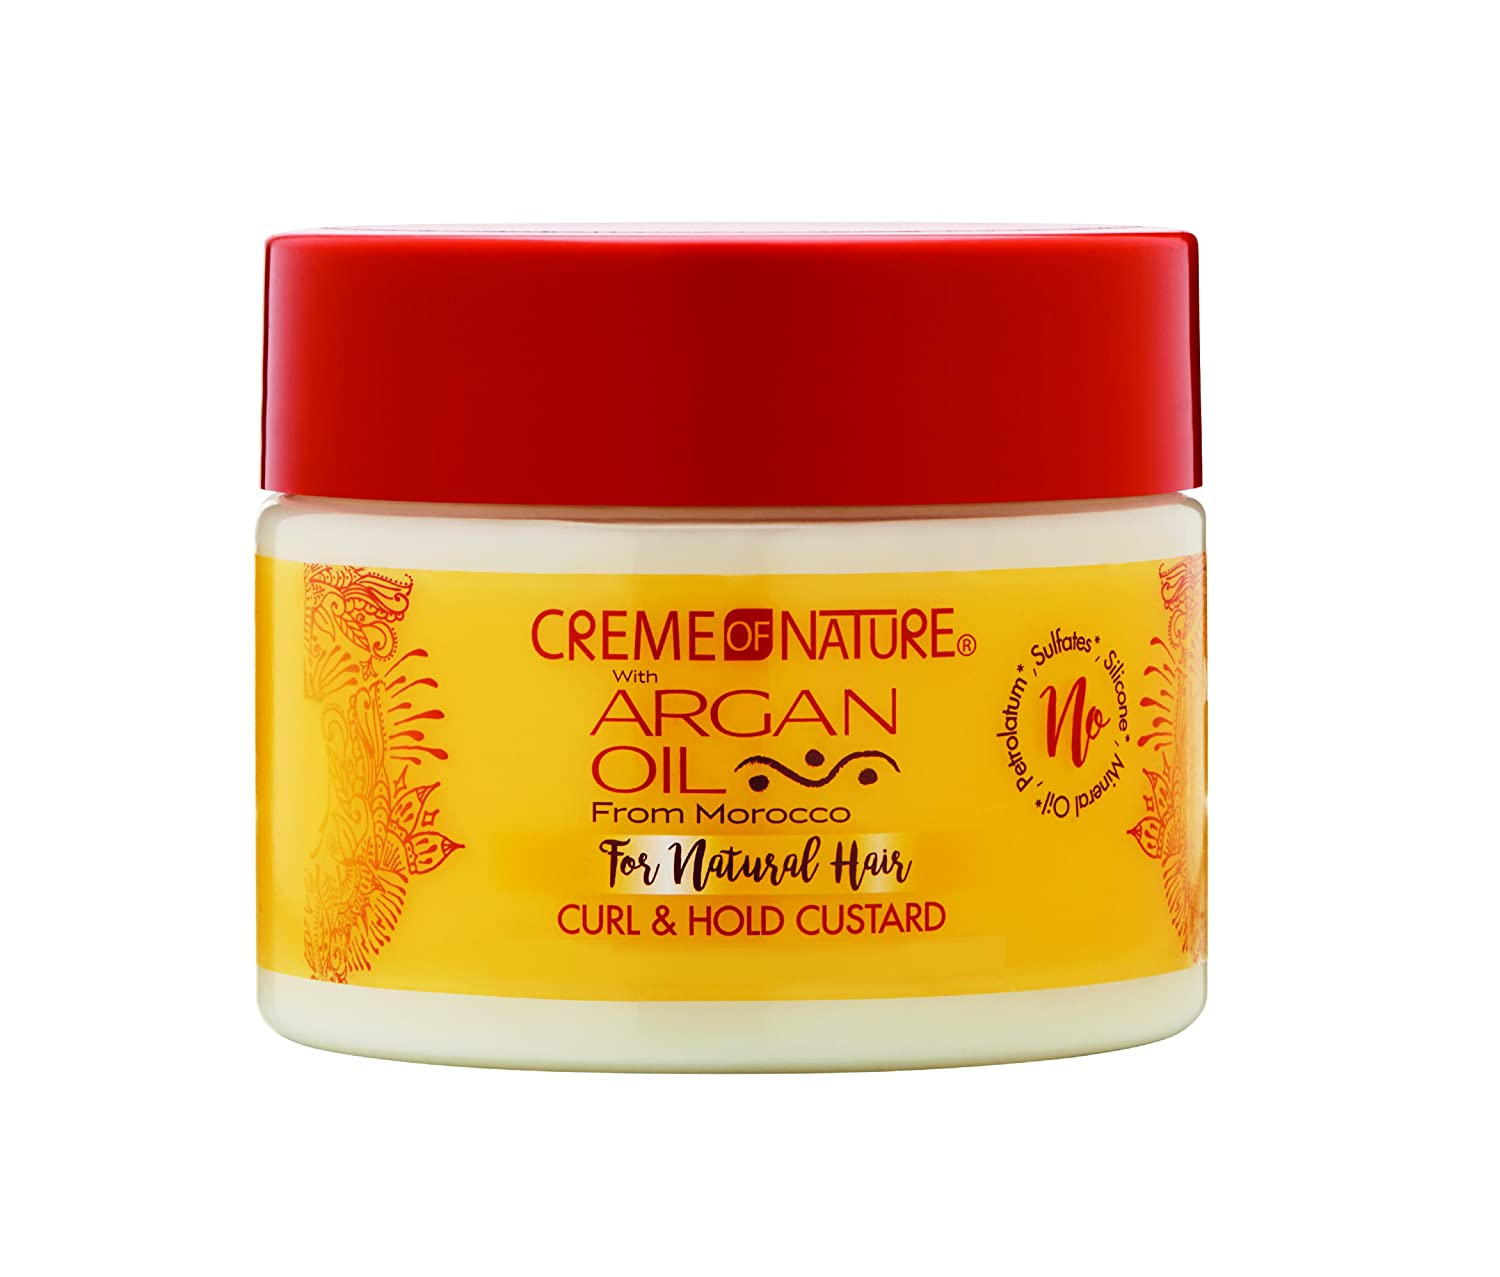 Creme of Nature with Argan Twirling 11. Spasm price custard styling 70% OFF Outlet gel curl